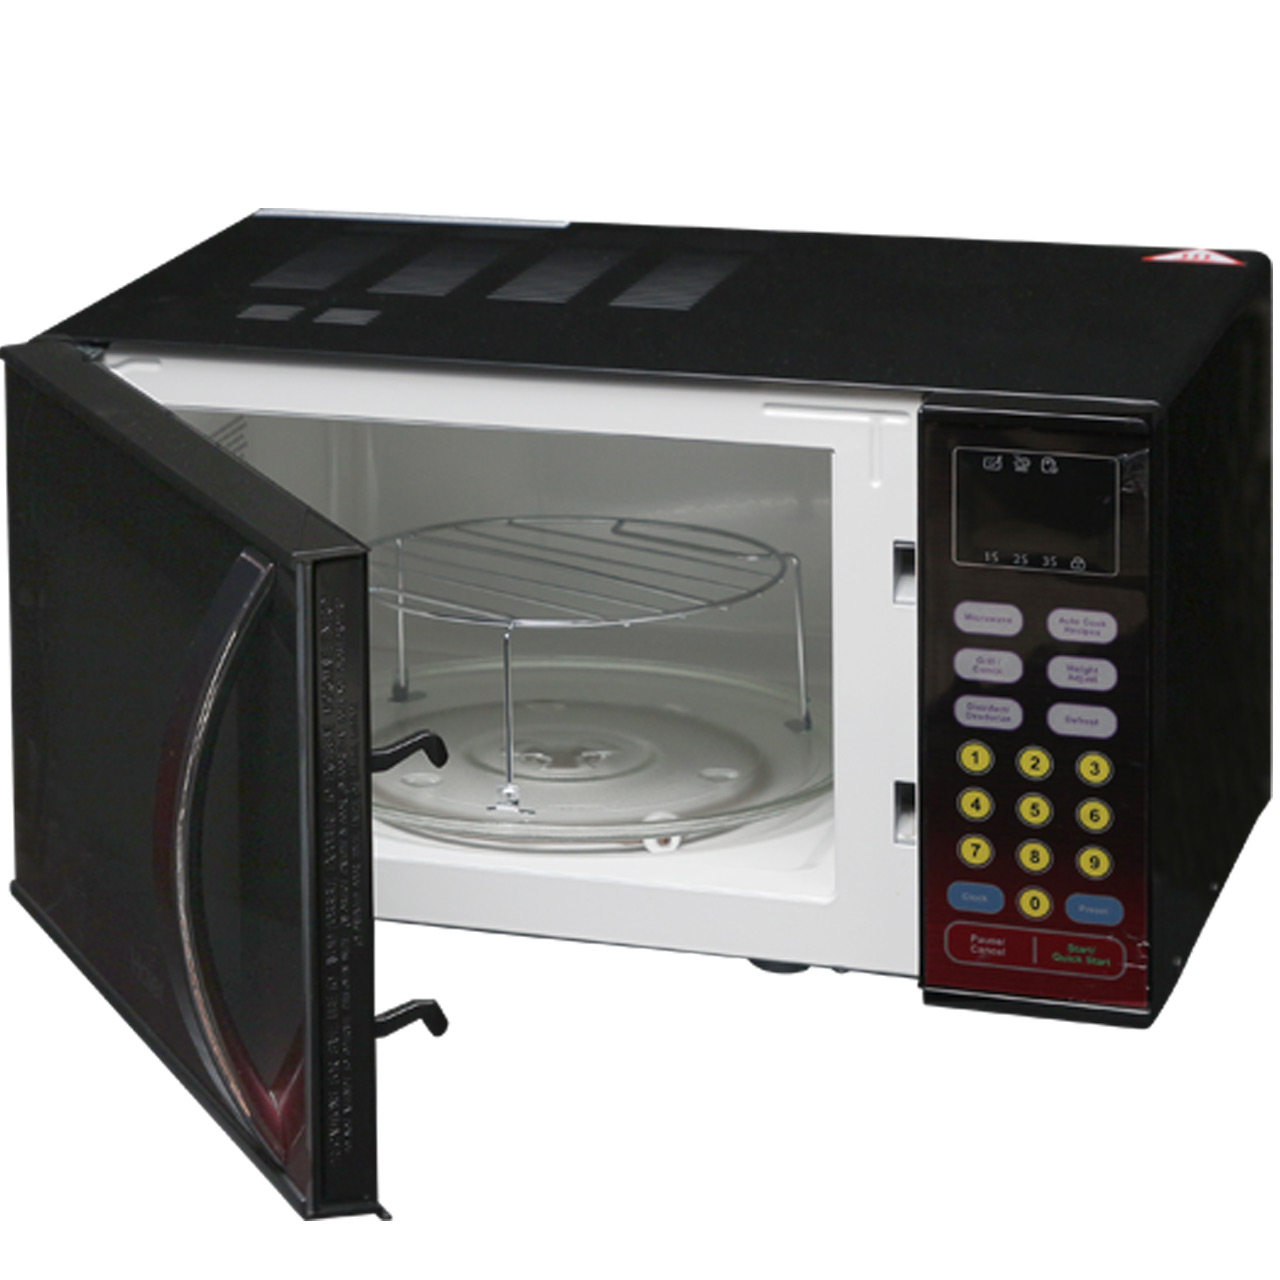 Haier 25l Free Standing Microwave Oven 2590egt